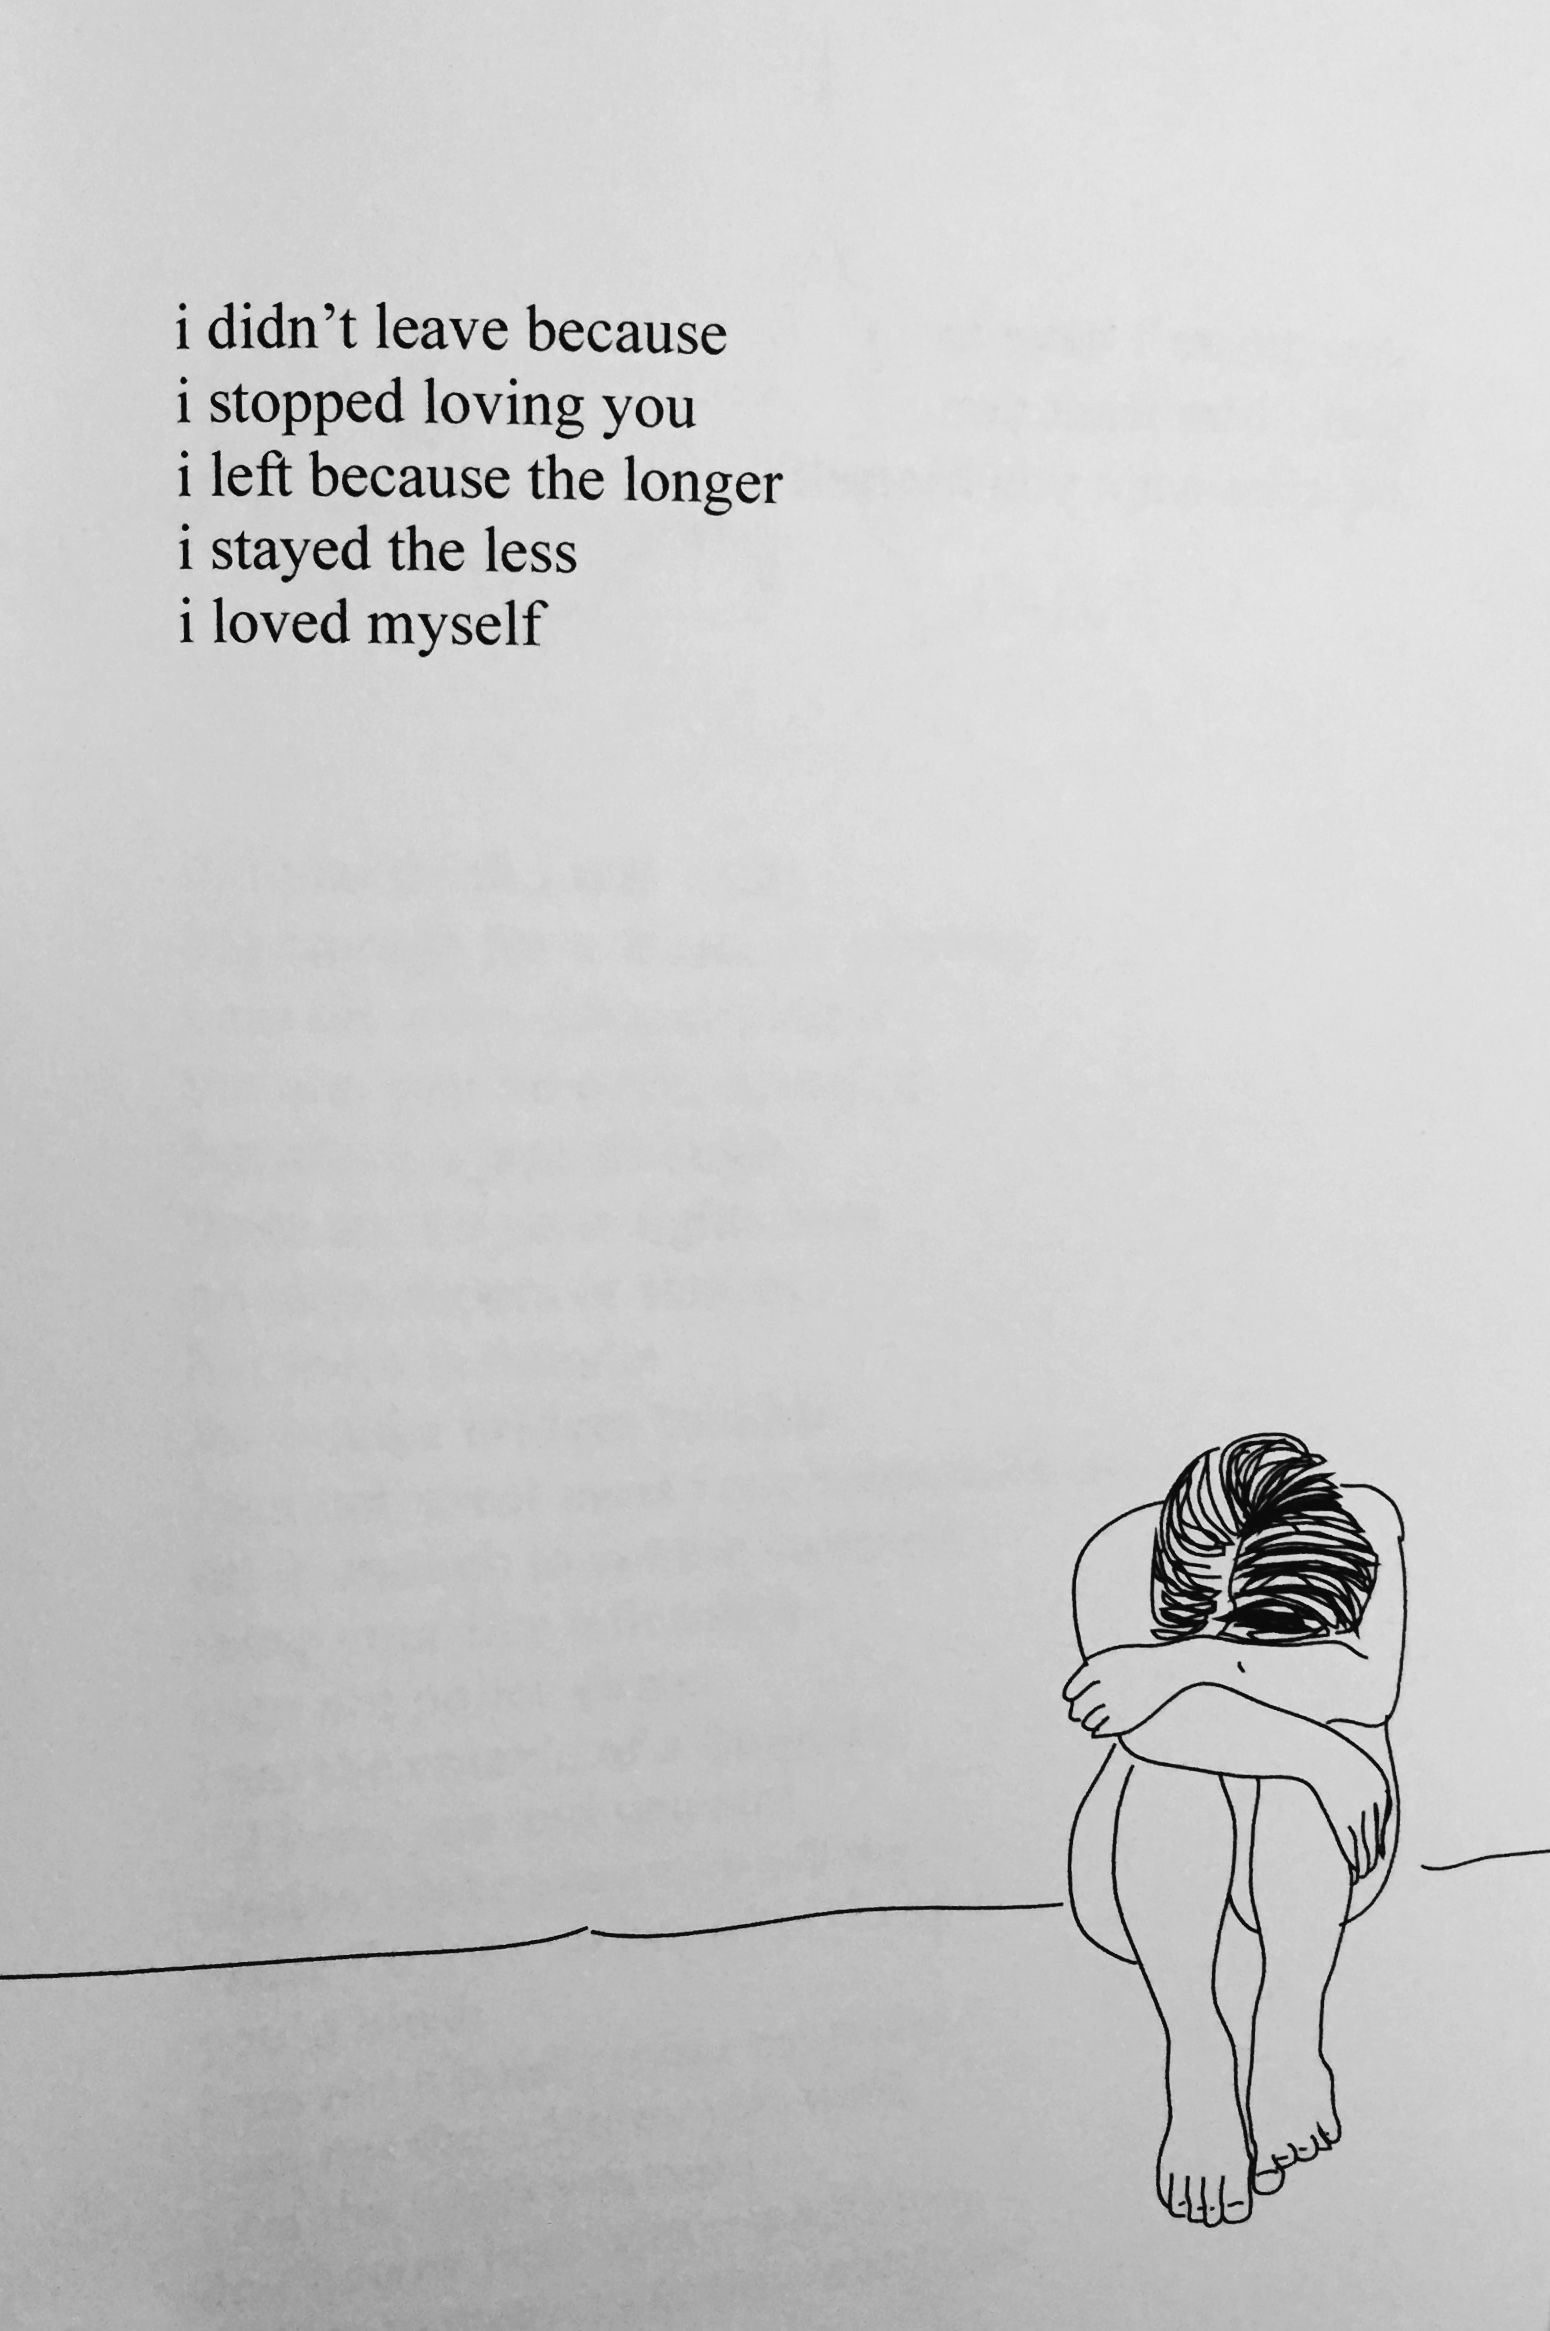 Love Yourself First Quotes Love Yourself First Rupi Kaur  Love Pinterest  Rupi Kaur Poem